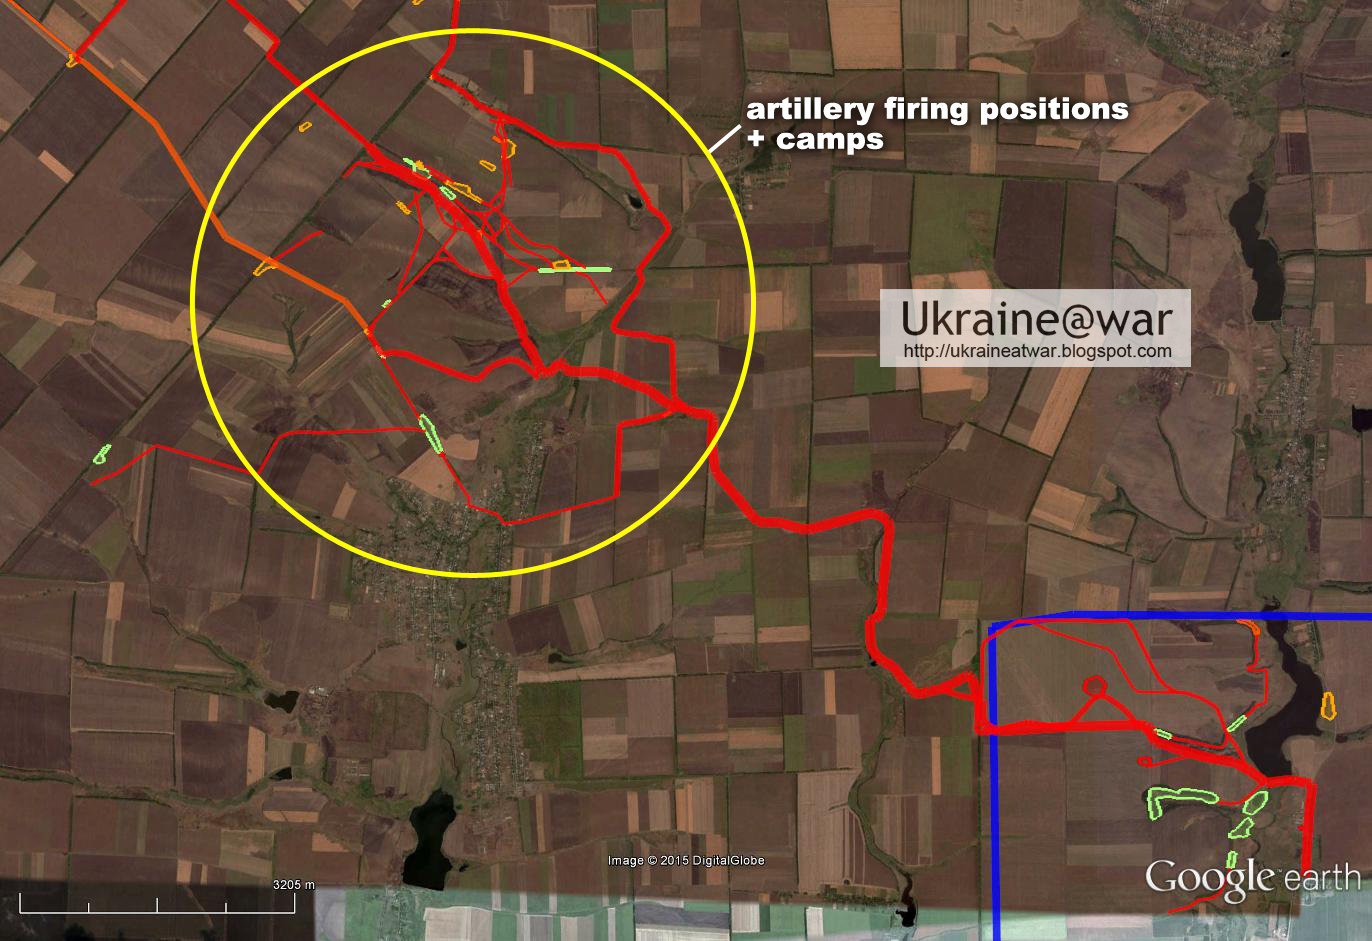 Google Earth shows how Russians crossed border to create Ilovaisk massacre